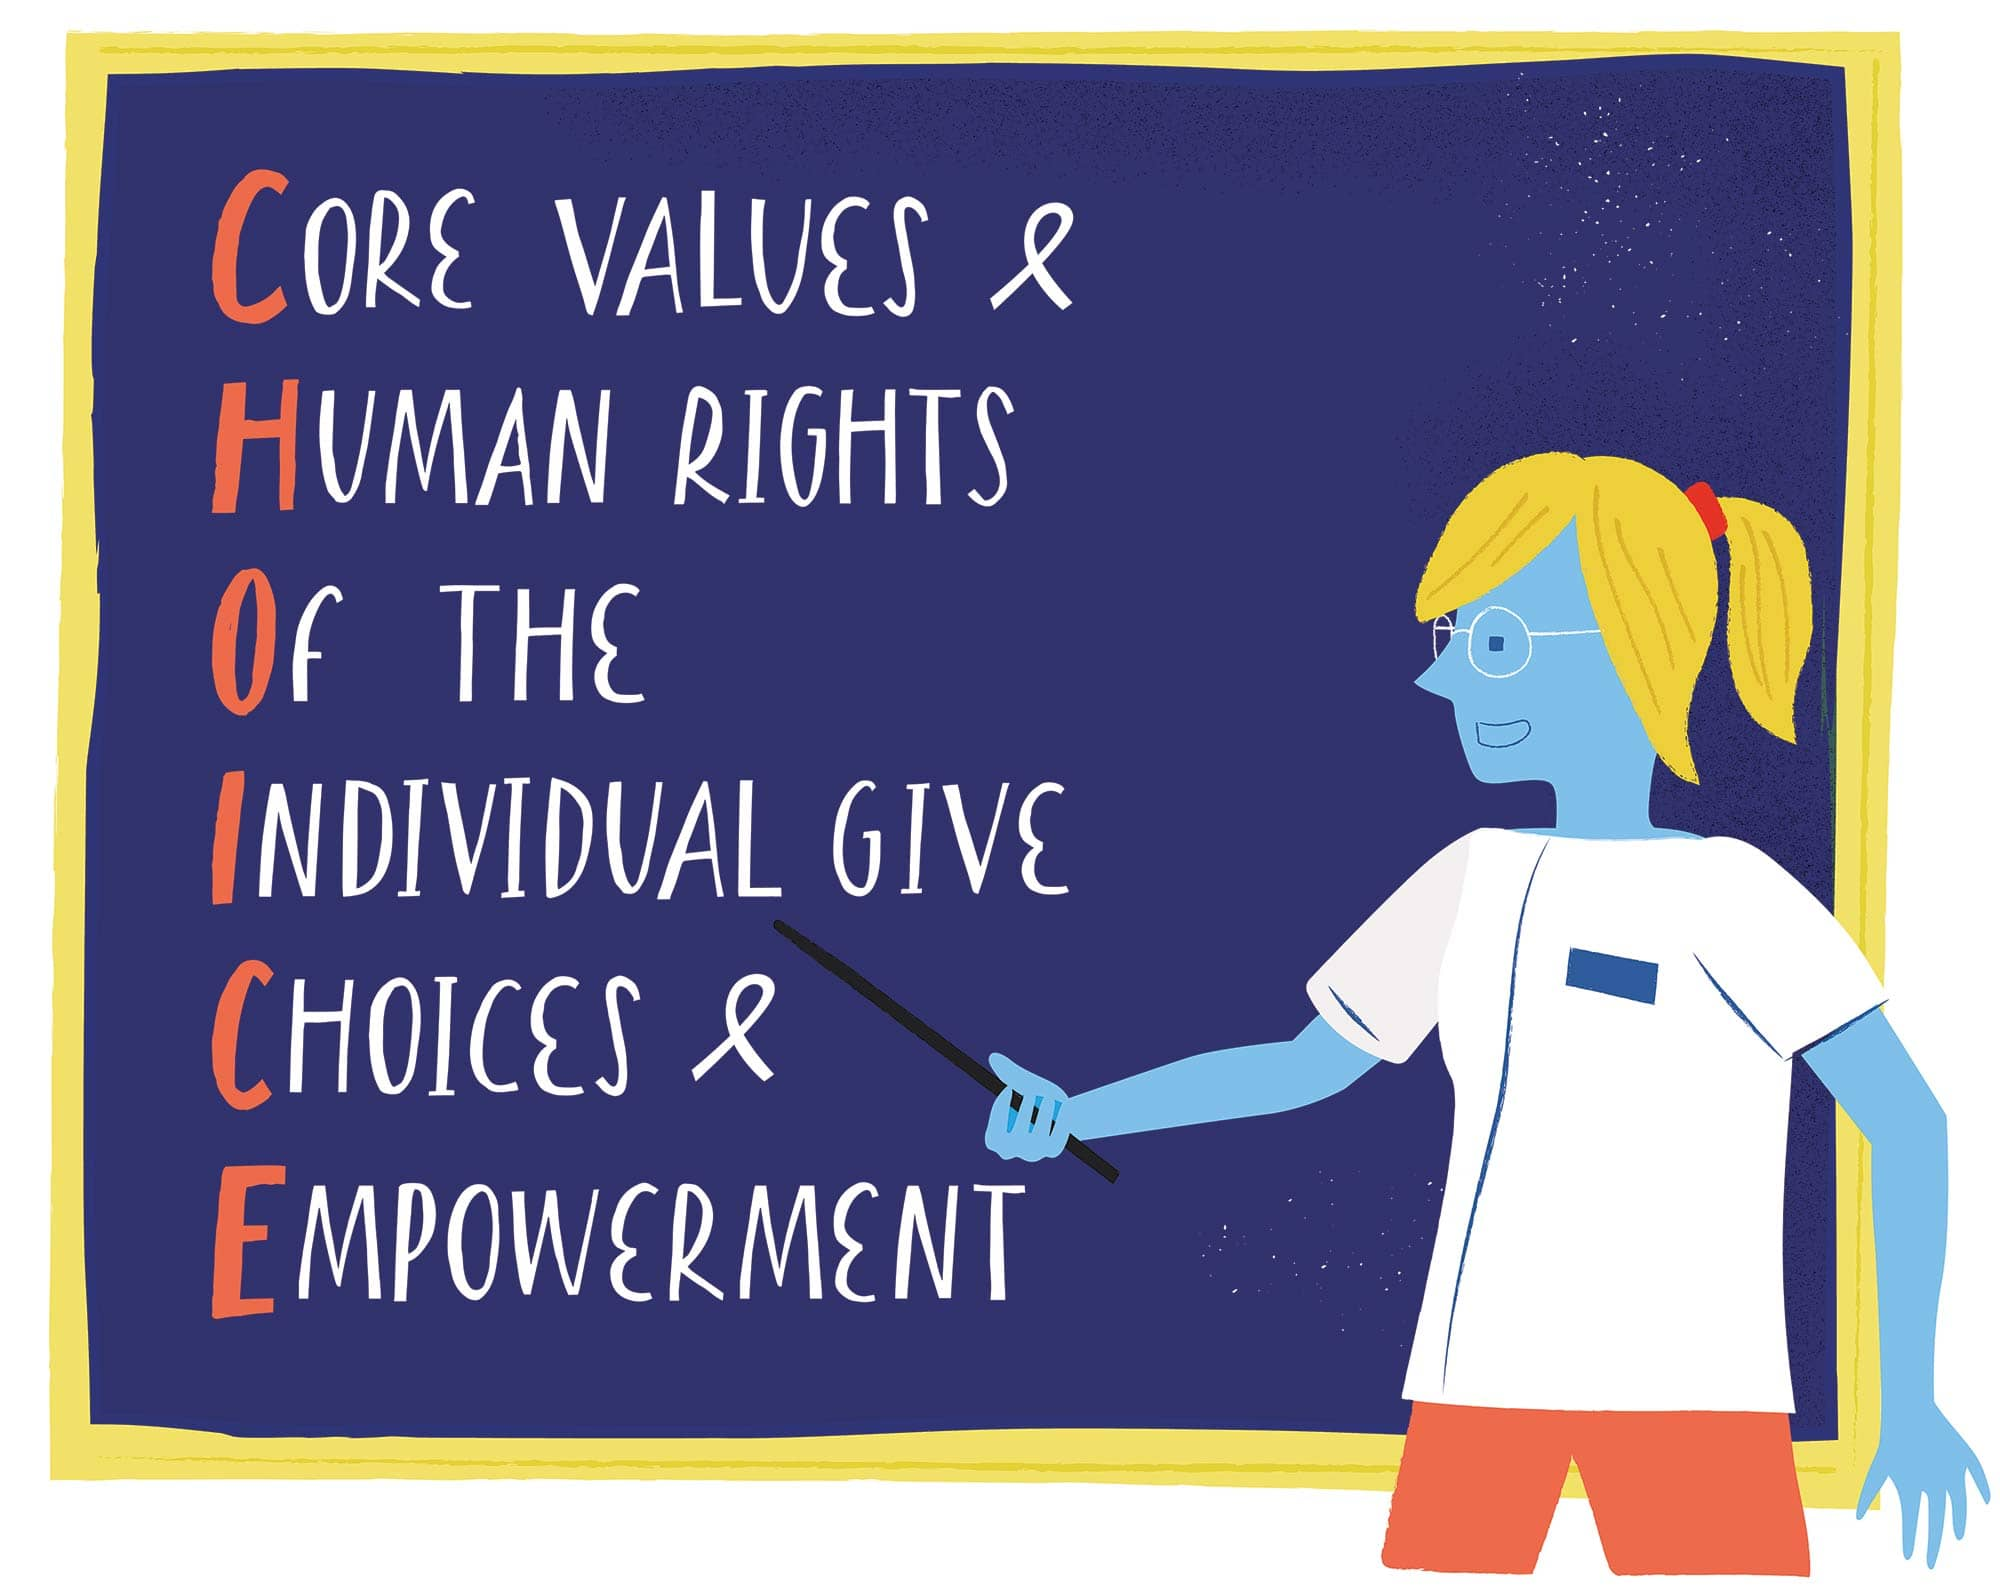 Infographic showing commitment to cor values, human rights, the individual, and choice